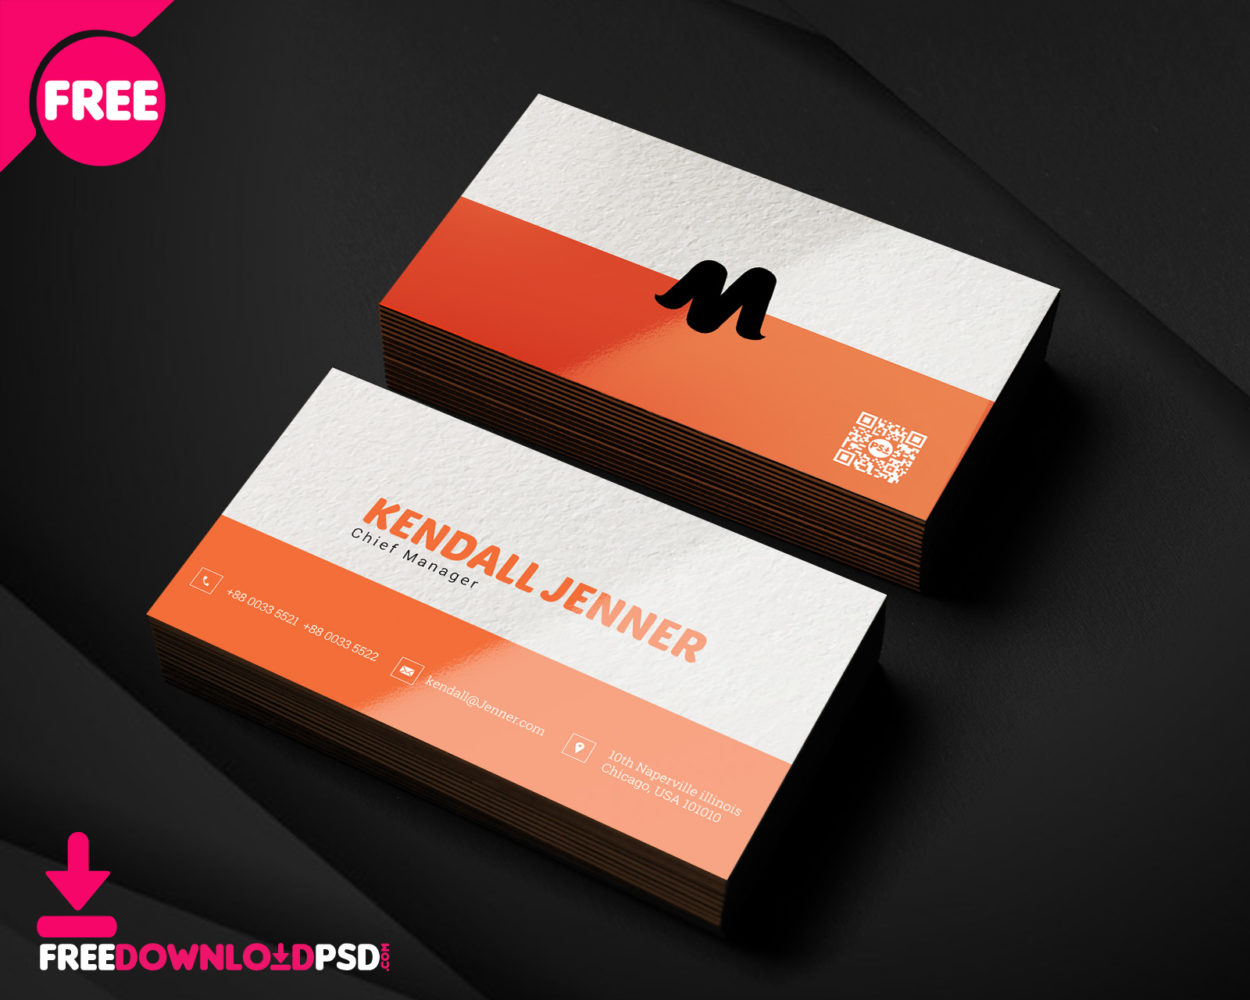 100 free business card psd templates professional business card psd template cheaphphosting Image collections